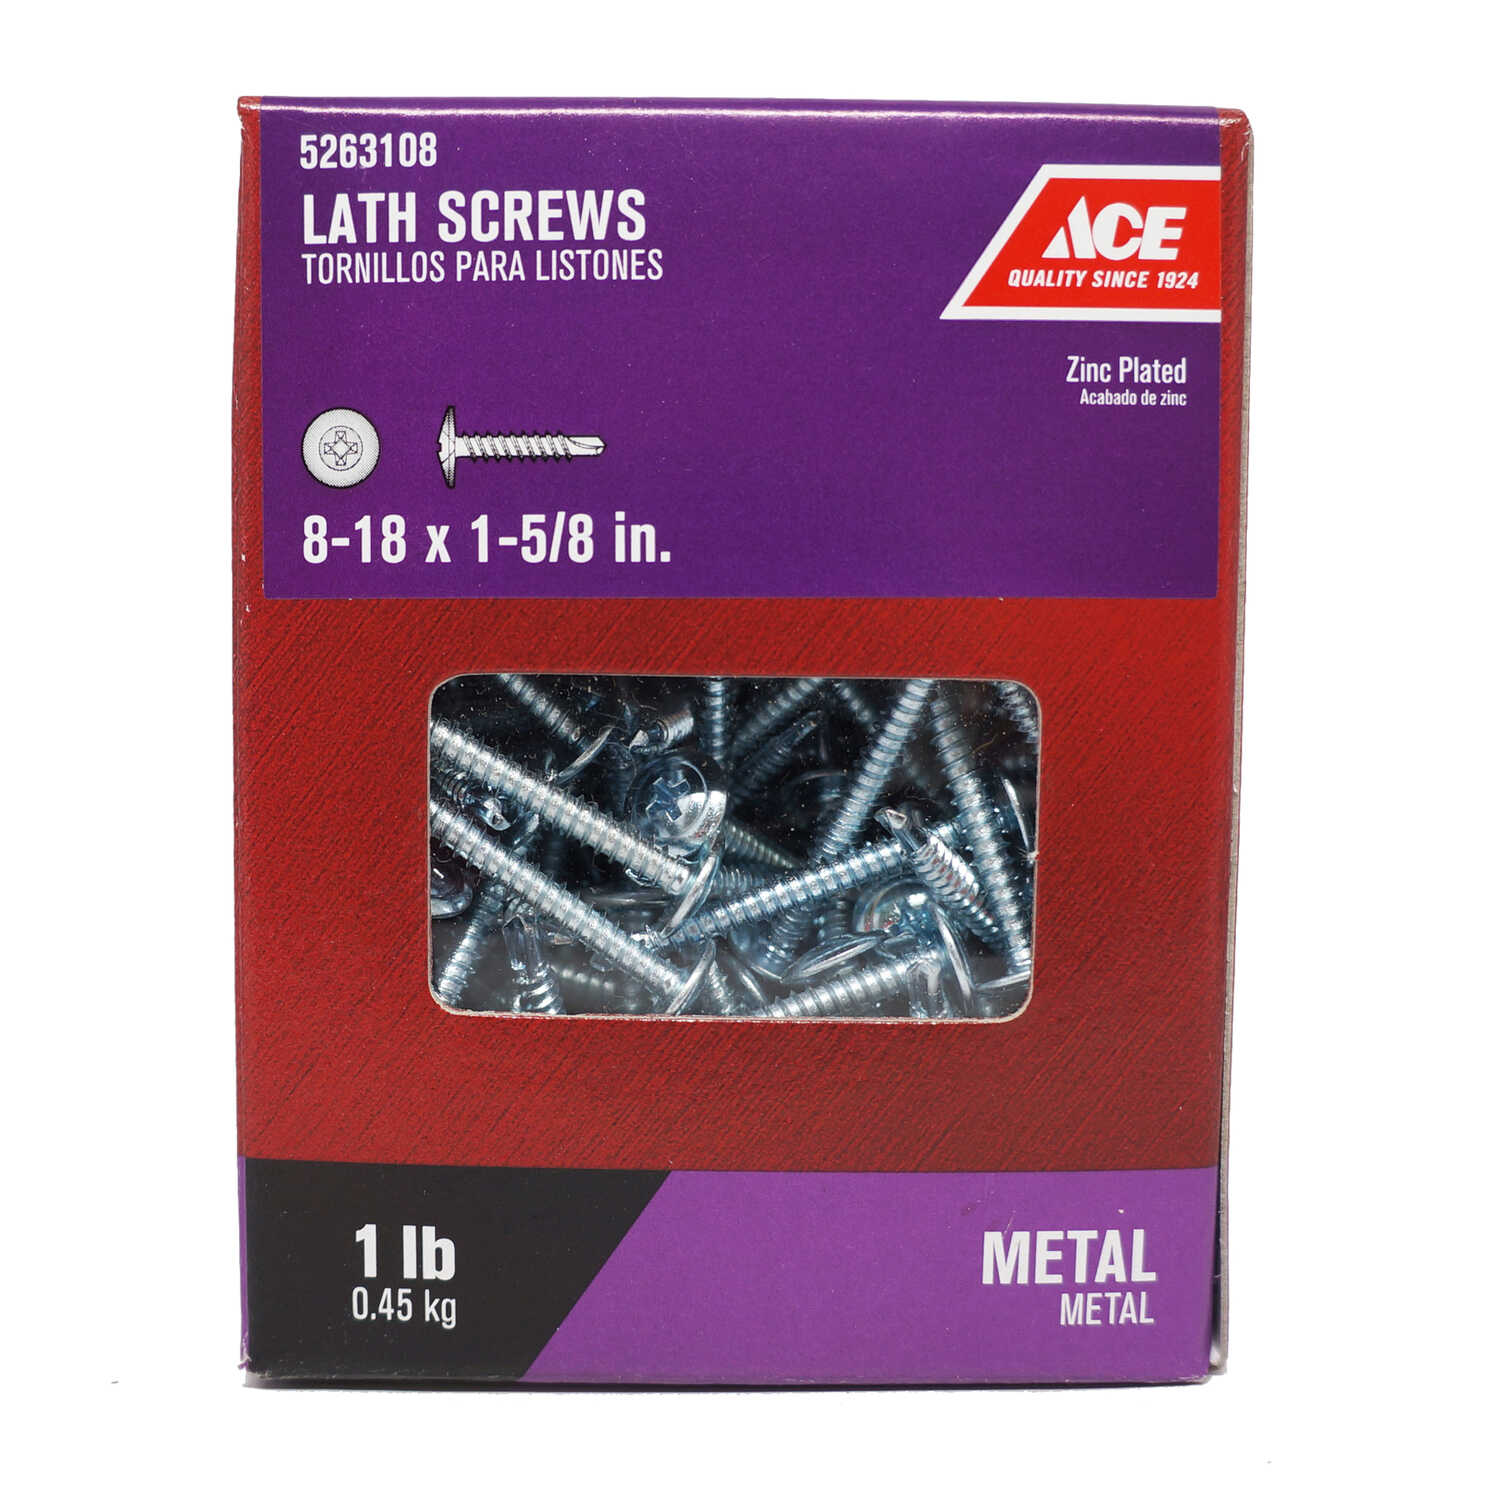 Ace  No. 8   x 1-5/8 in. L Phillips  Truss Washer Head Zinc-Plated  Steel  Lath Screws  126 pk 1 lb.